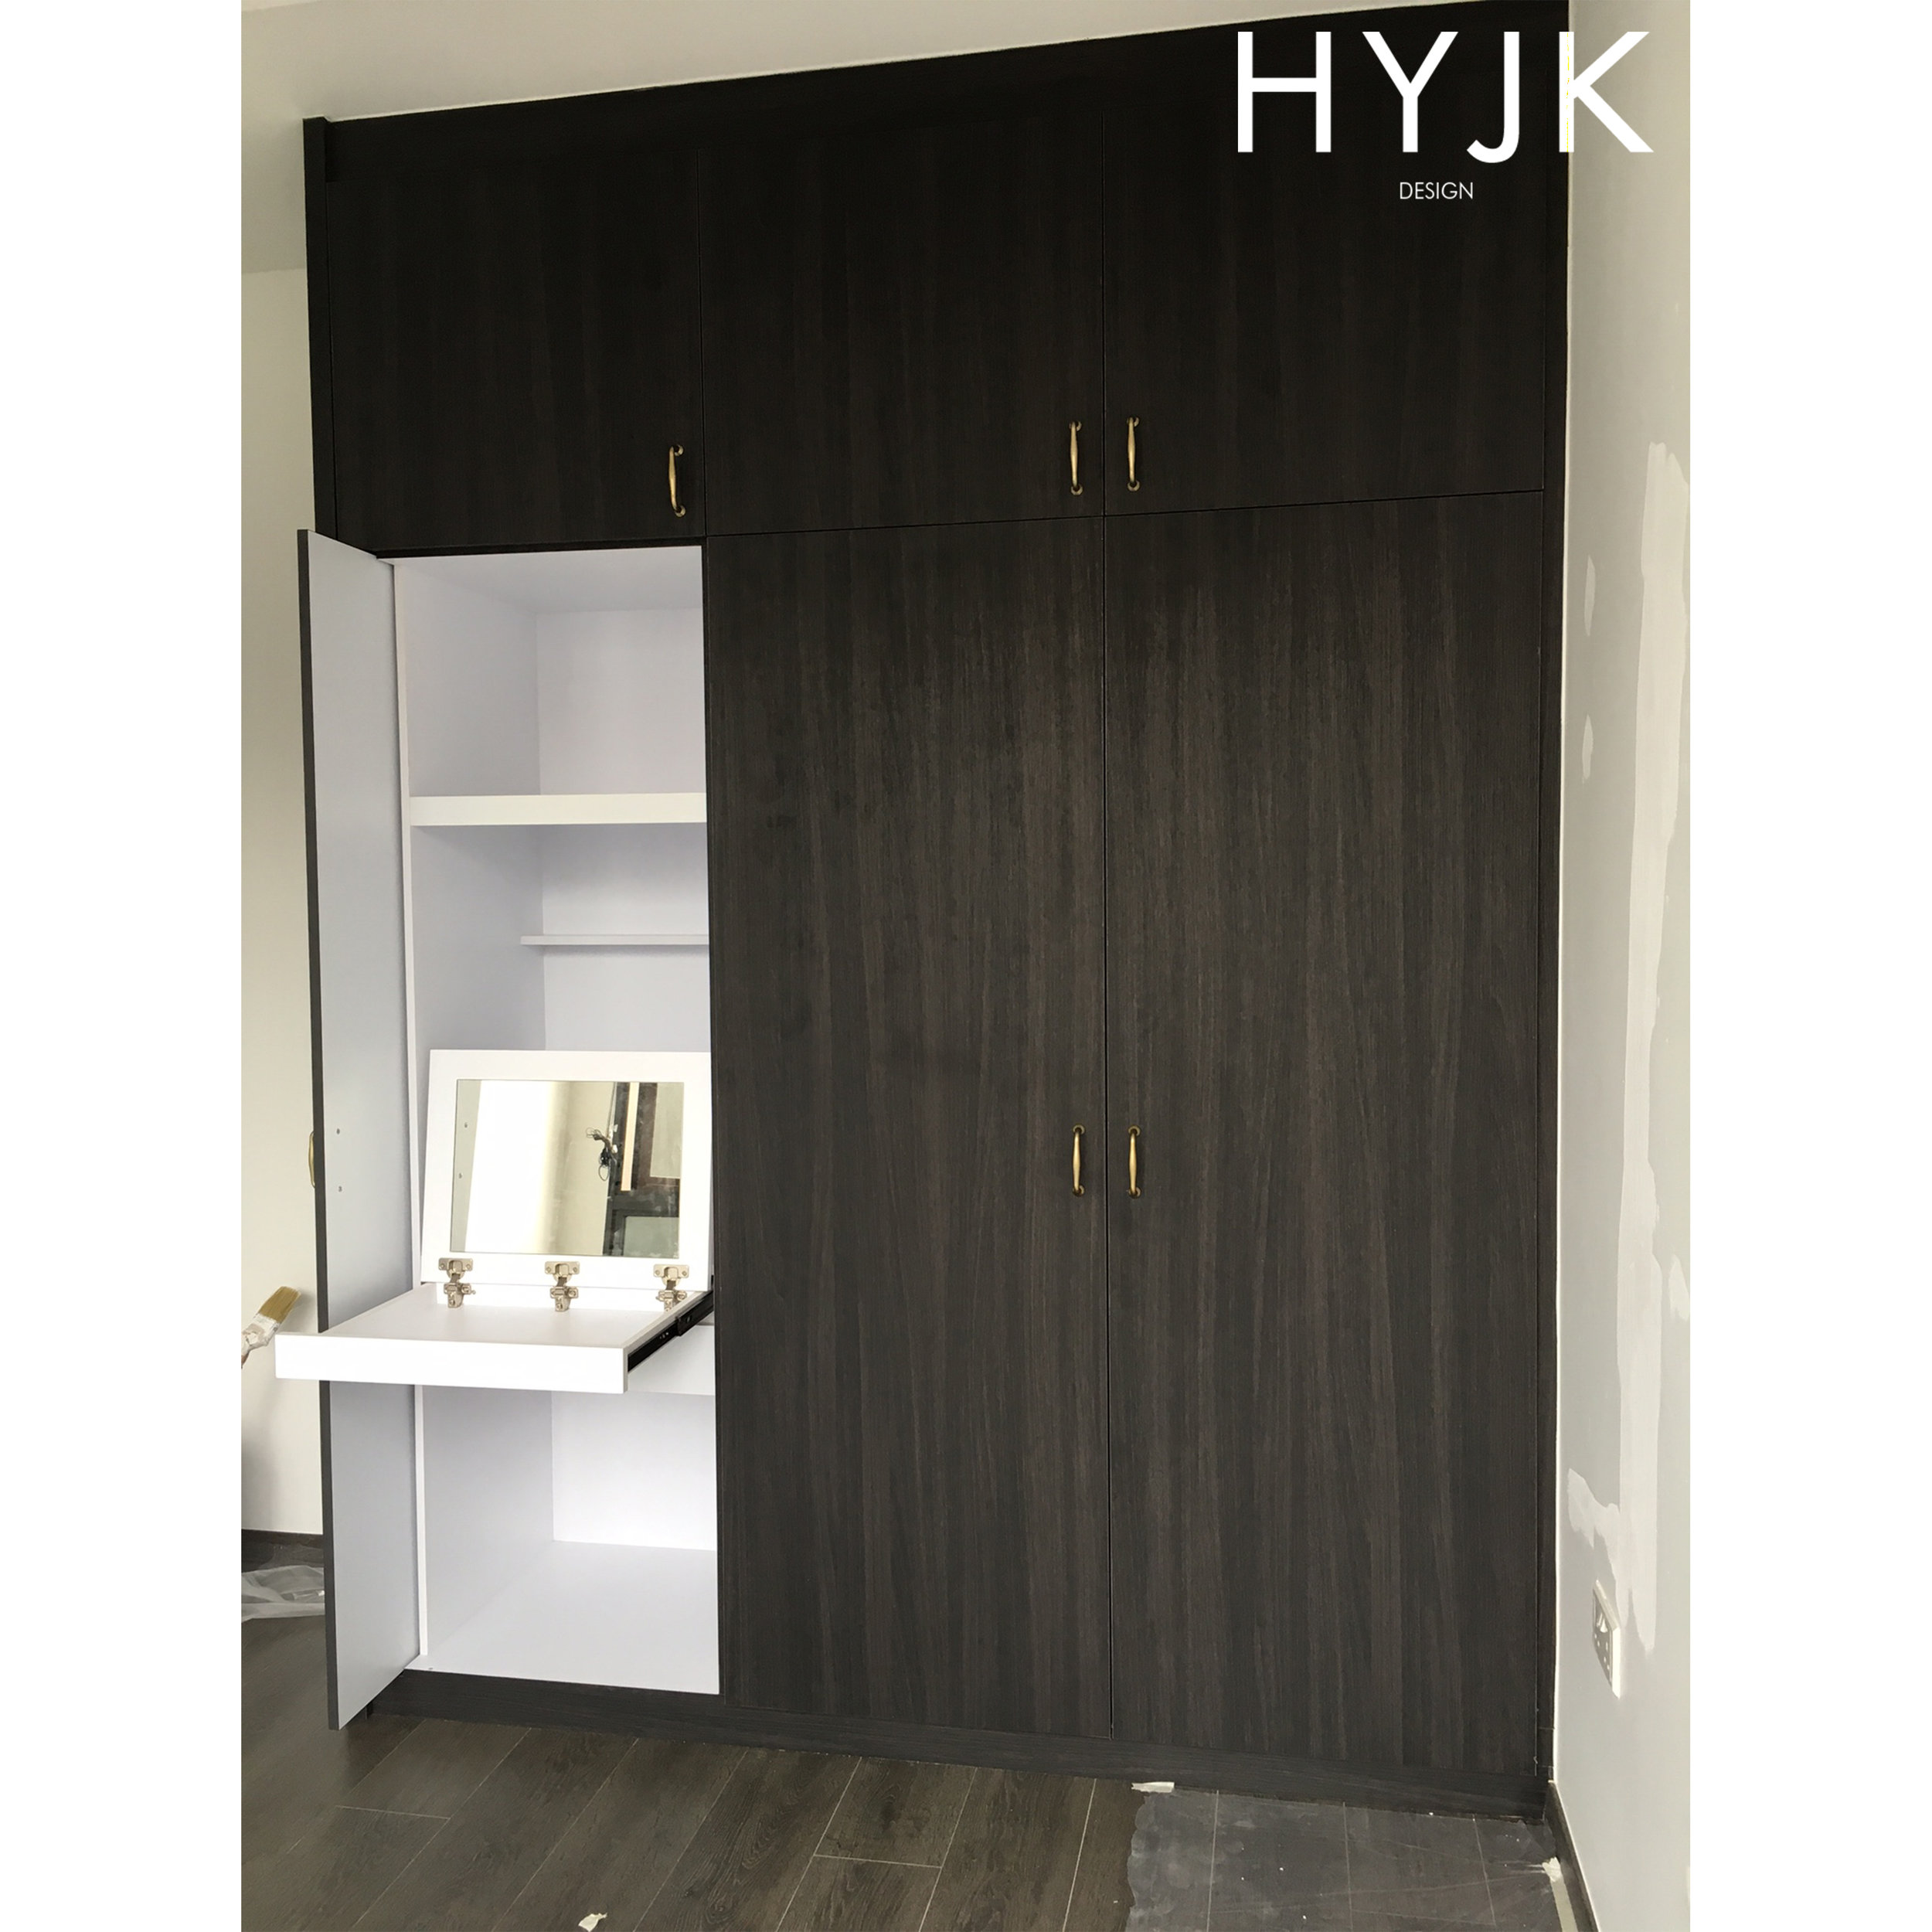 Built-in dresser with retractable wardrobe door featuring a pull-out table top fitted with a mirror.